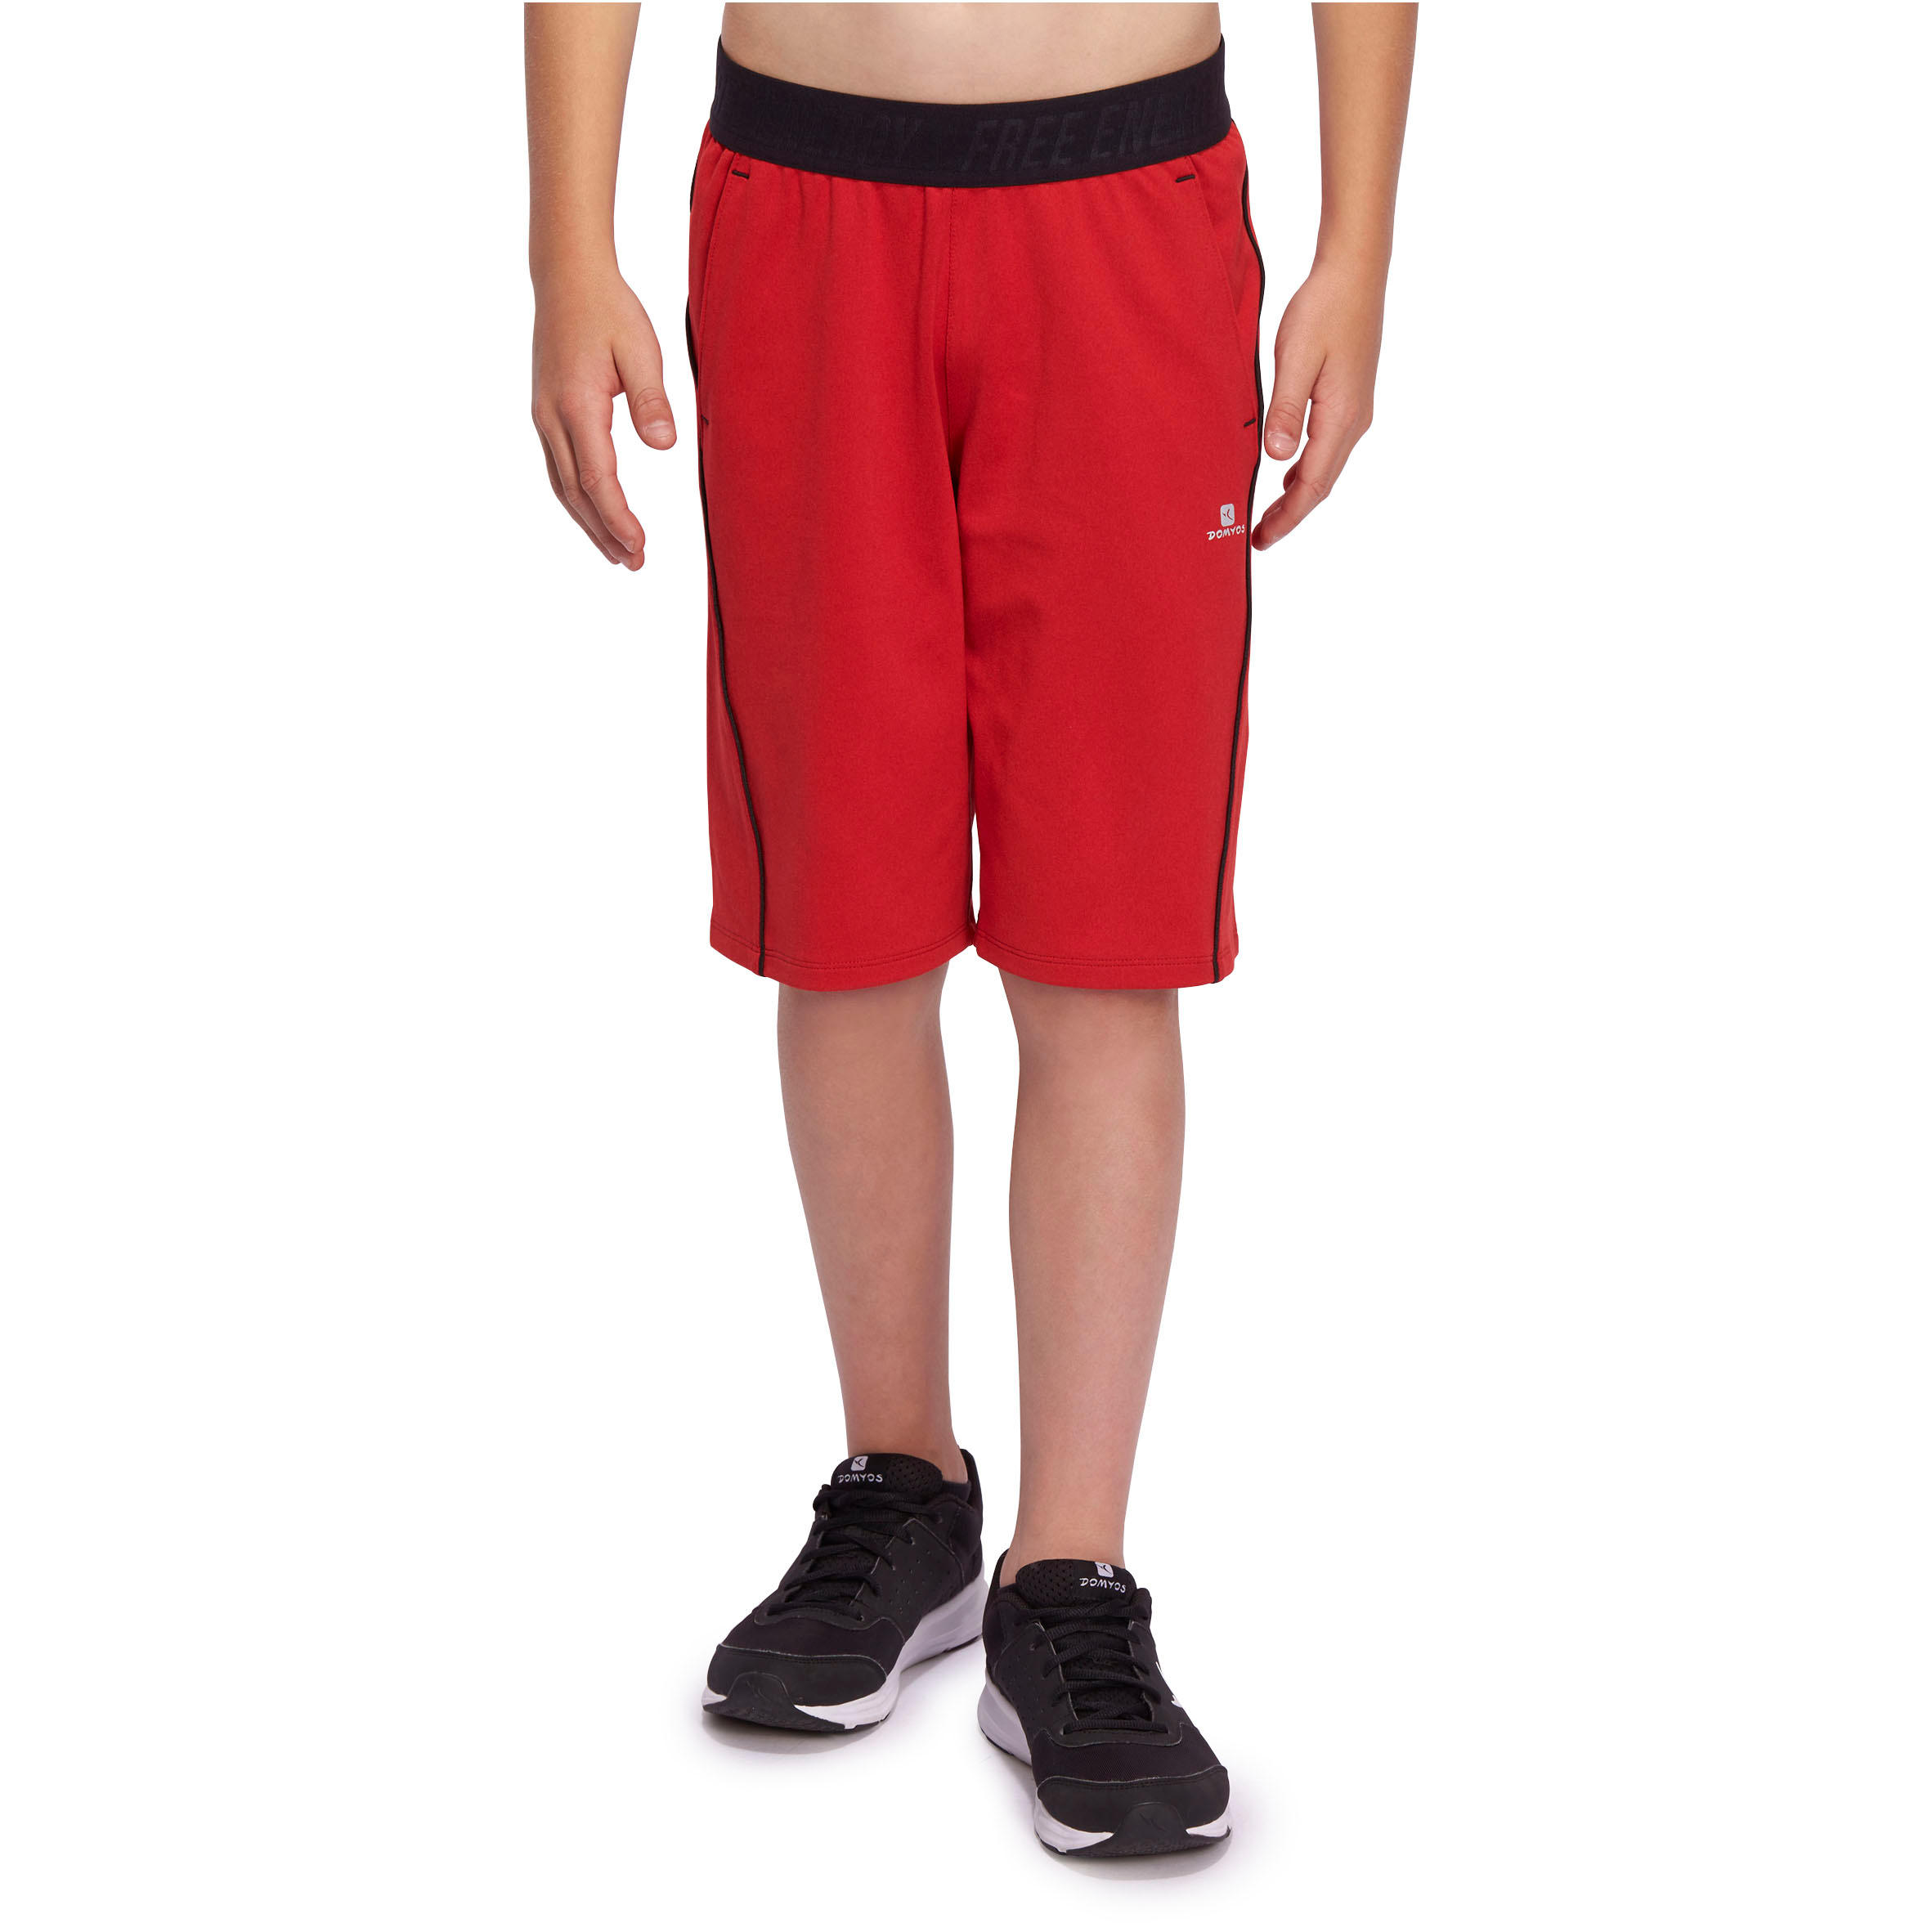 Energy Boys' Gym Shorts - Red